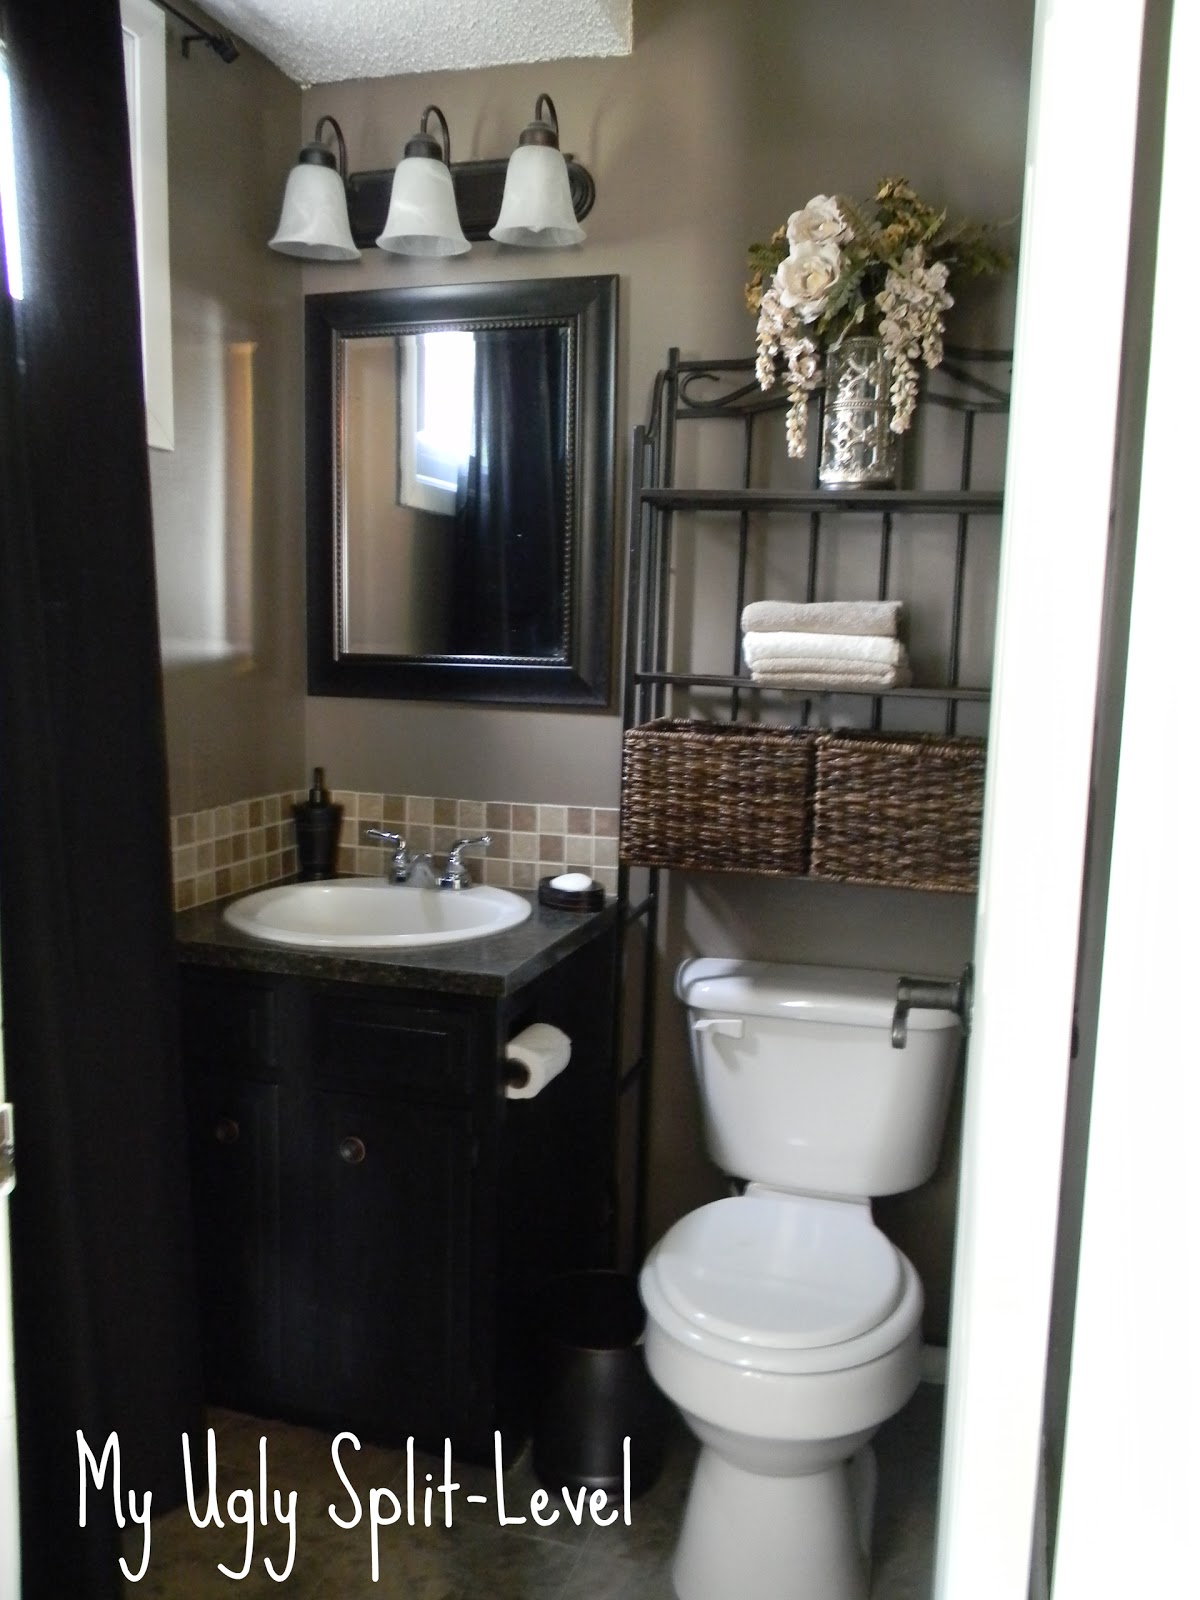 My ugly split level the back bathroom Bathroom decor ideas images